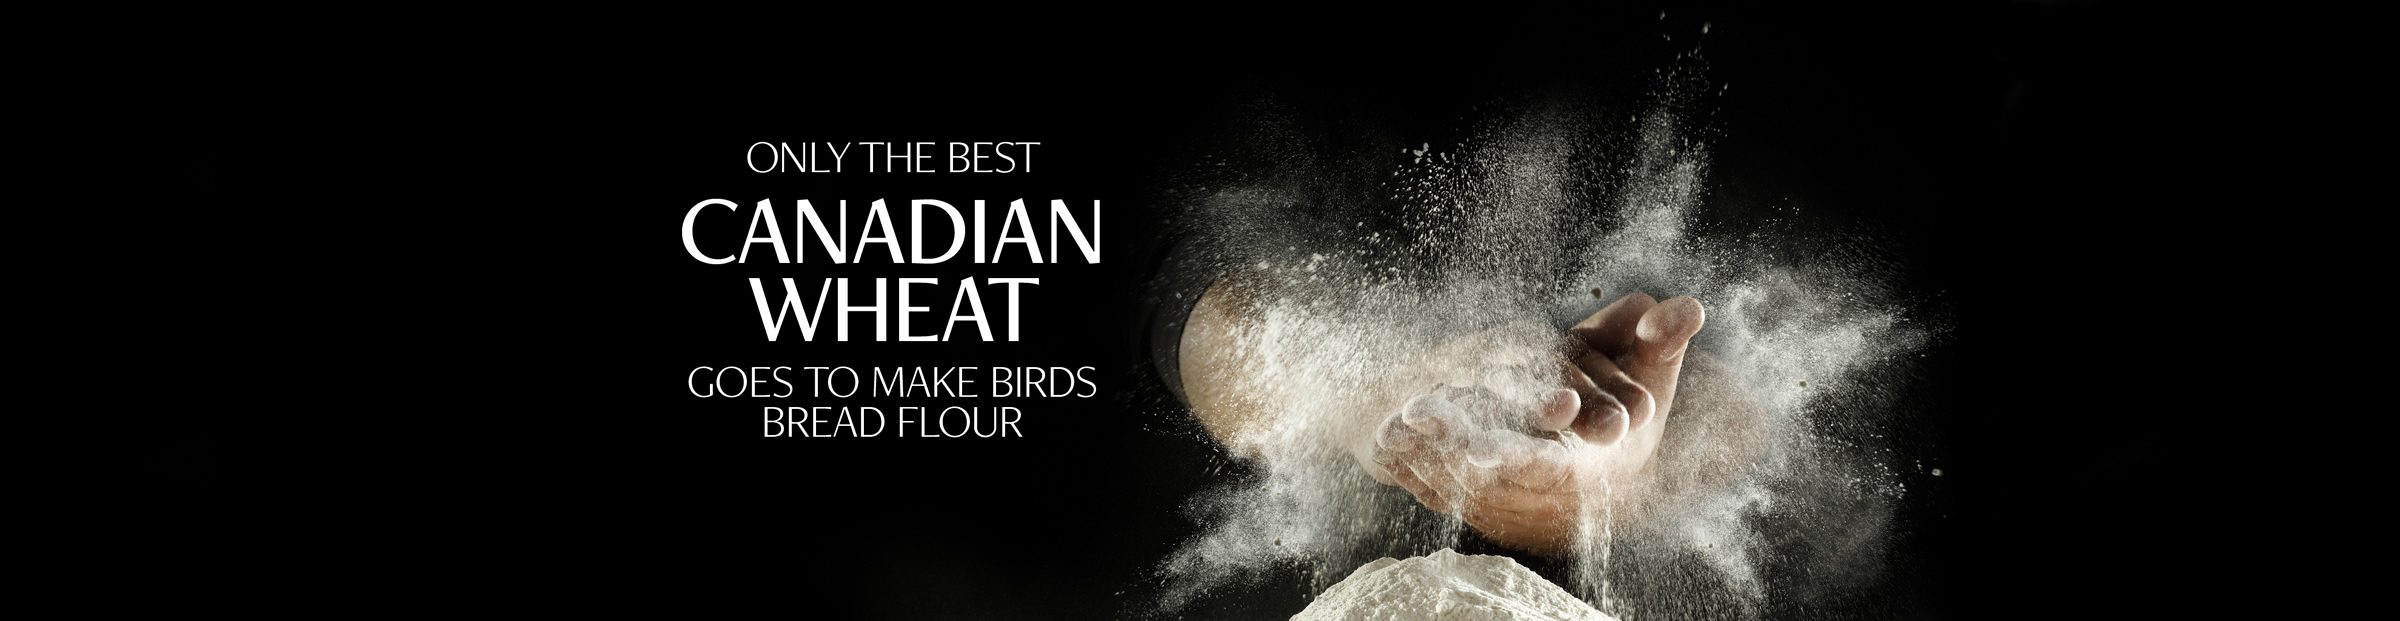 Only the best Canadian wheat goes to make Birds bread flour